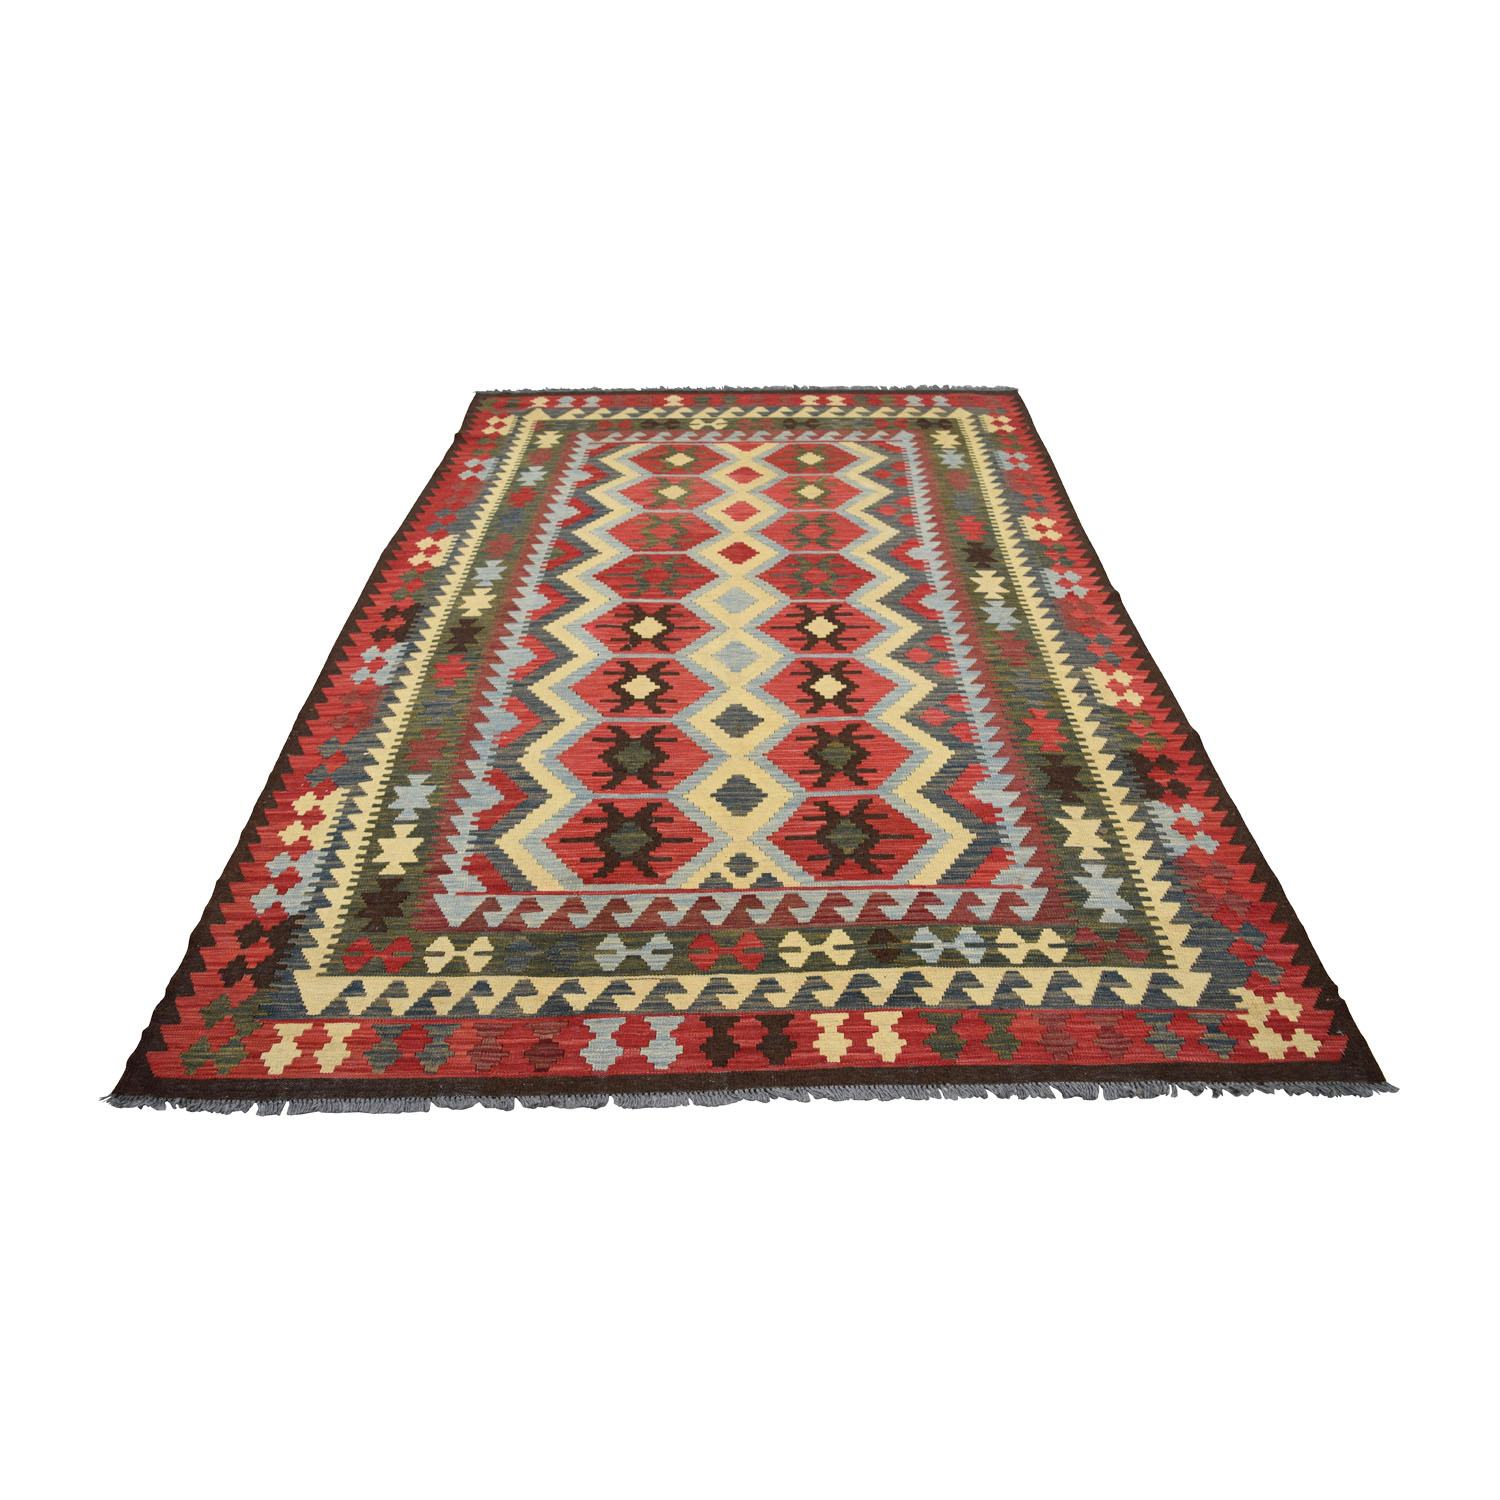 Rugs USA Rugs USA Kilim Multi-Colored Rug